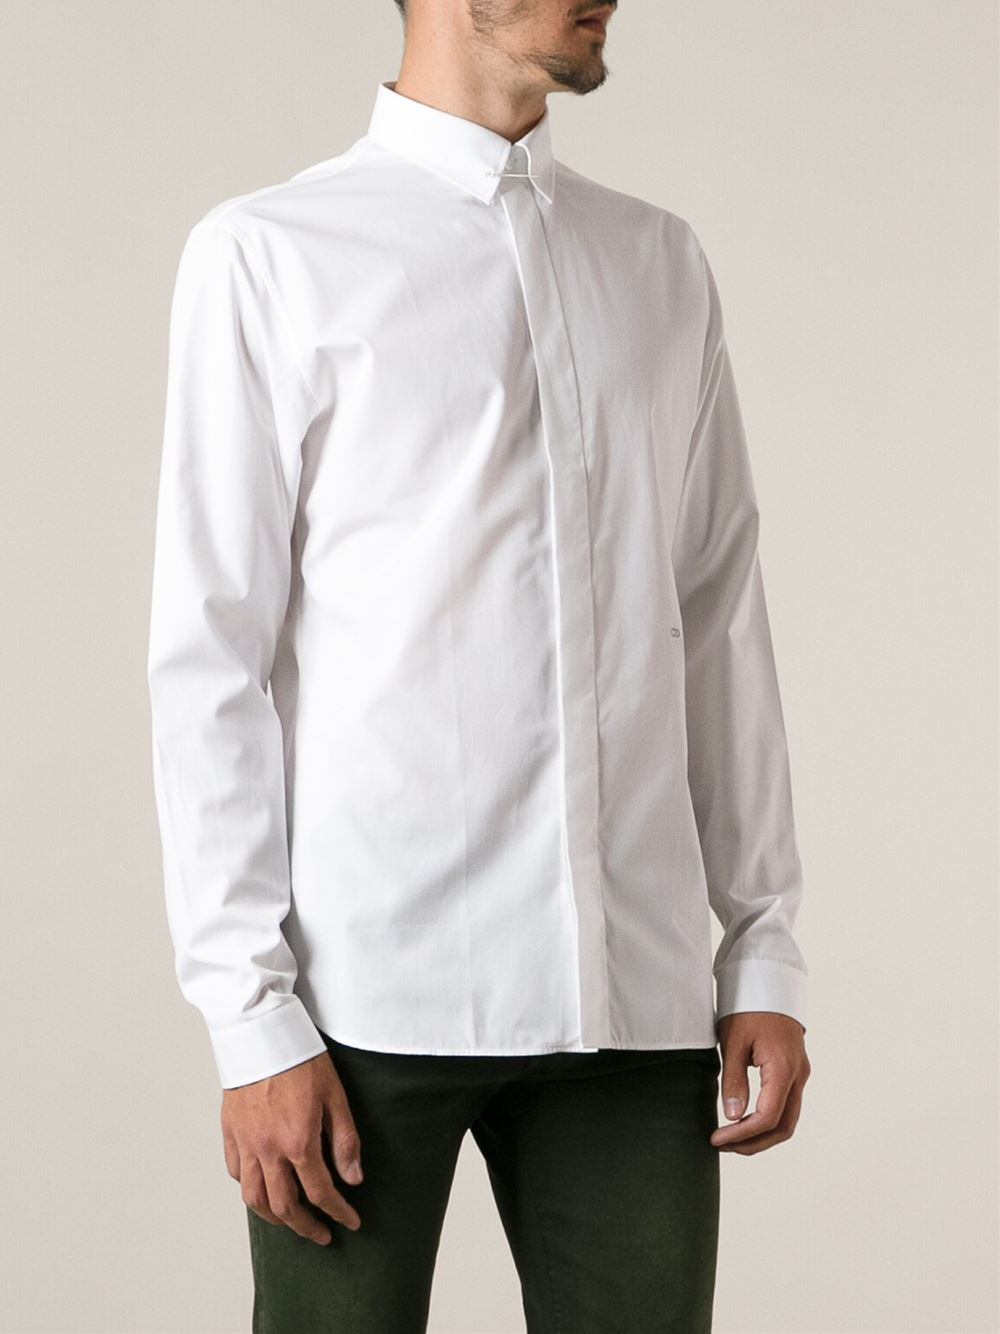 Dior Homme Pin Collar Shirt In White For Men Lyst